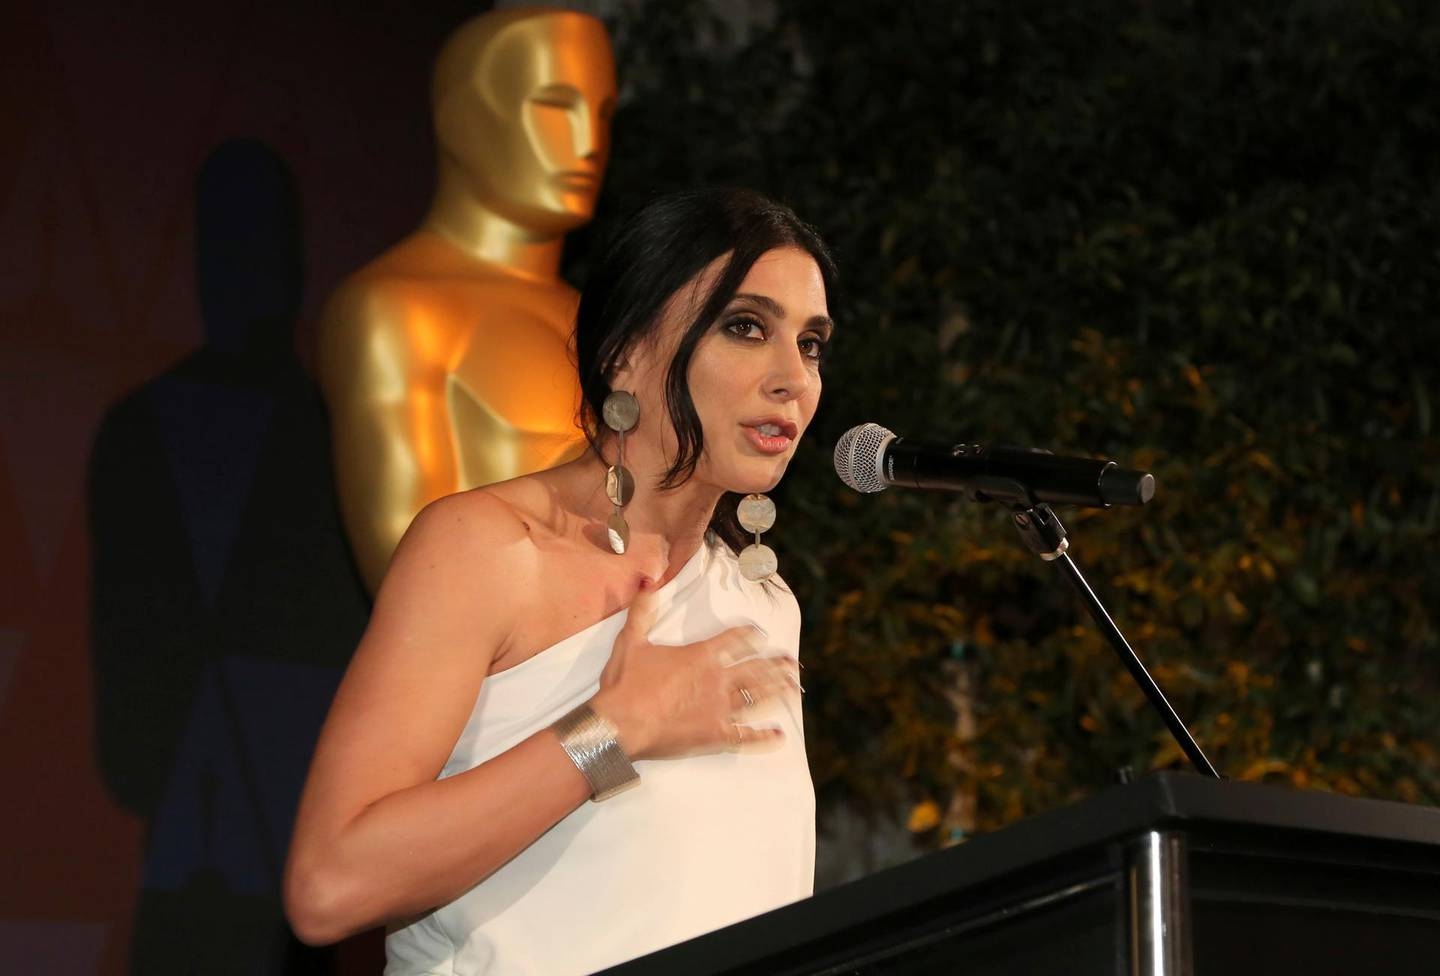 Nadine Labaki speaks at the 91st Academy Awards Foreign Language Nominees Reception at the Los Angeles Museum of Art on Friday, Feb. 22, 2019, in Los Angeles. (Photo by Willy Sanjuan/Invision/AP)